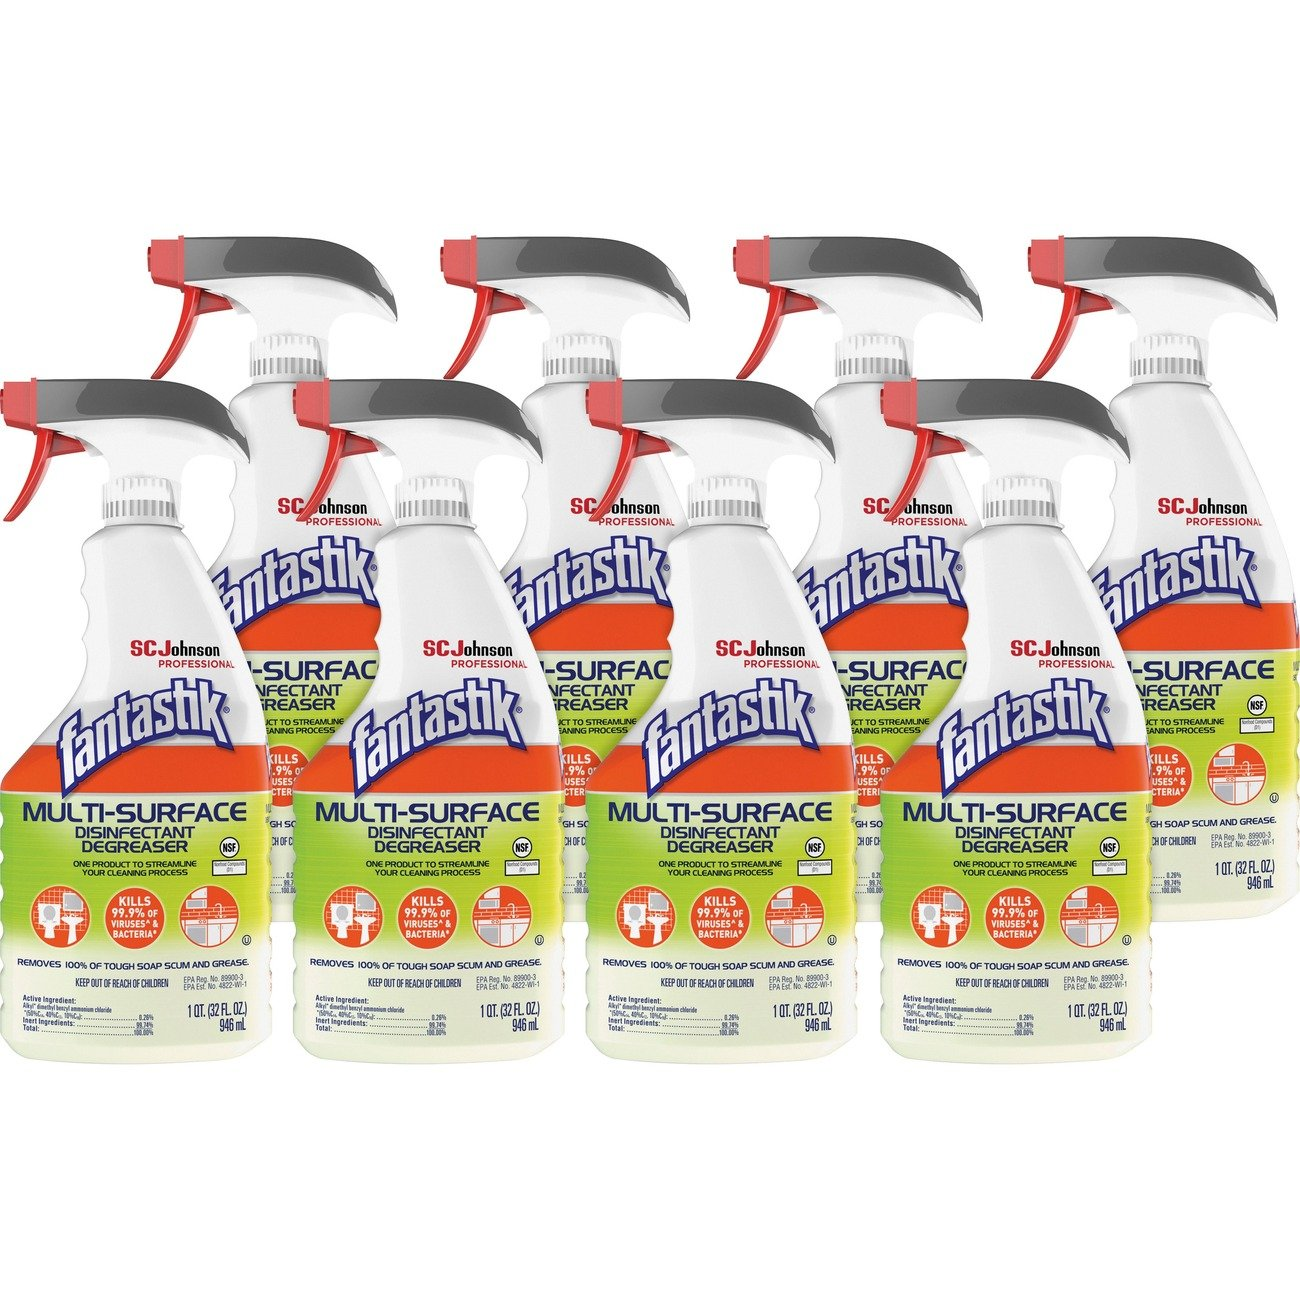 Fantastik Disinfectant Degreaser Spray - 32 fl oz (1 quart)